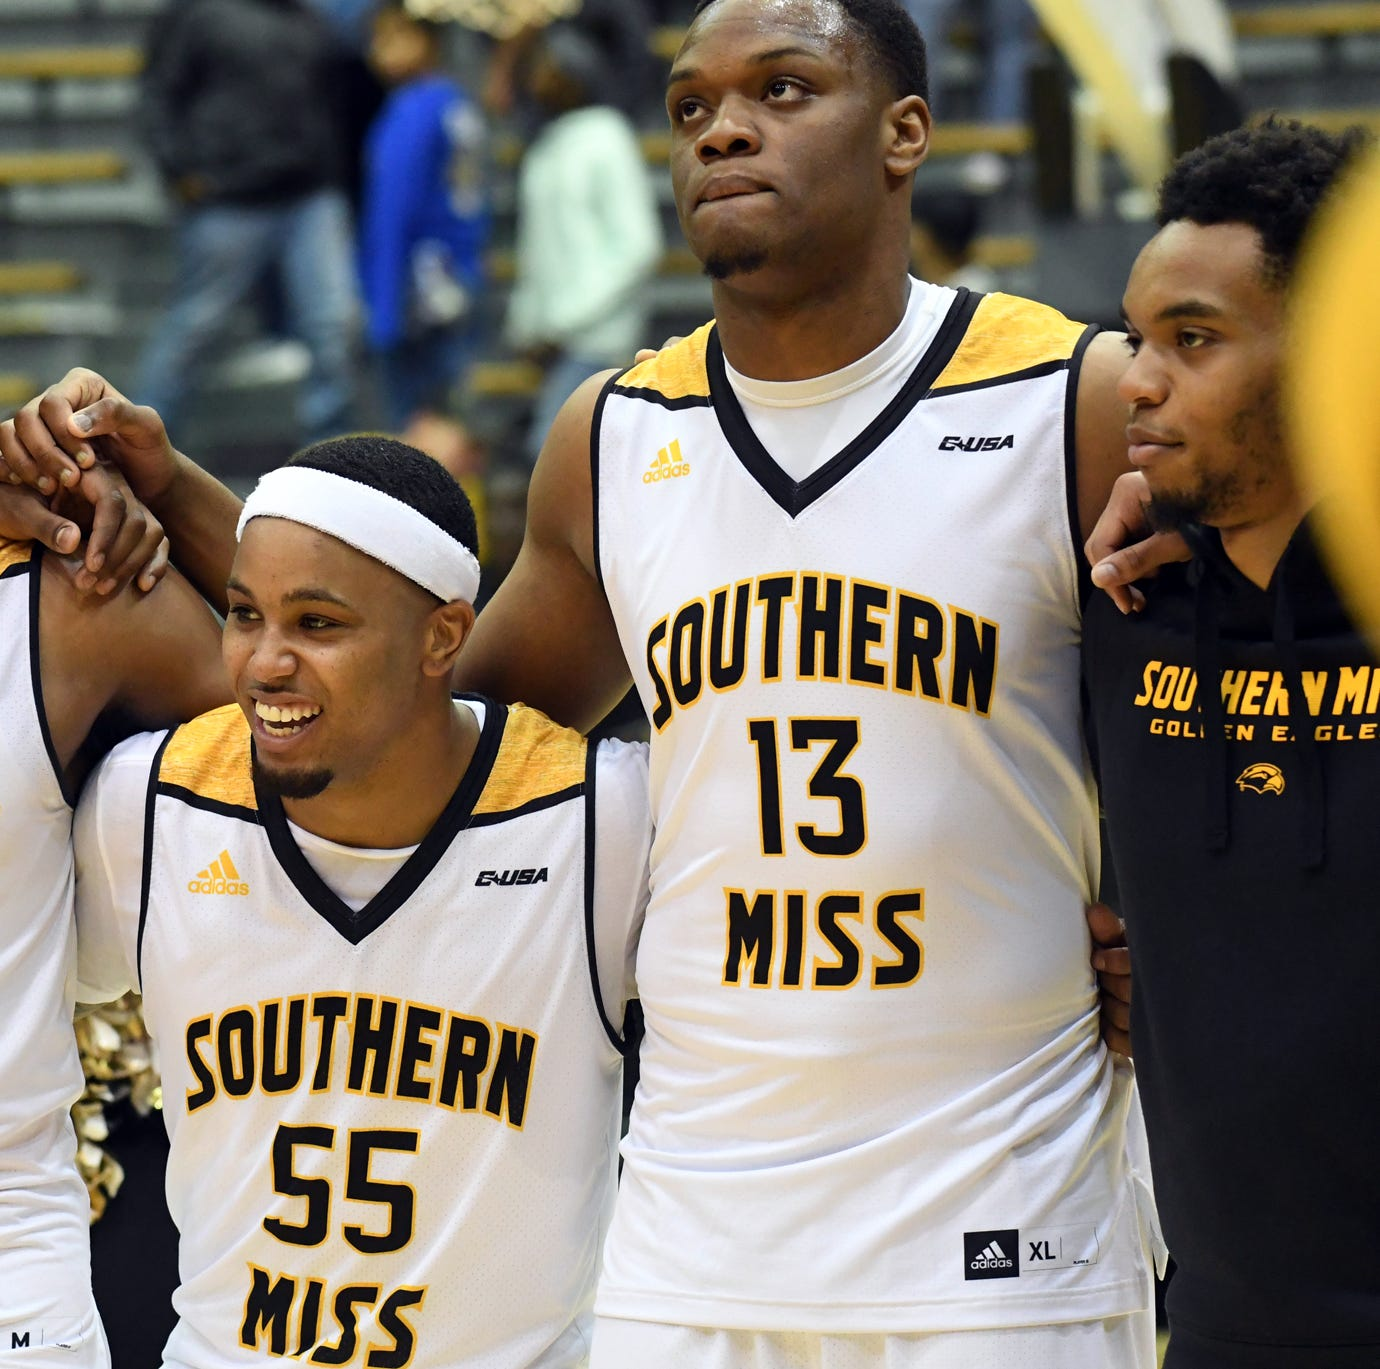 Postseason play continues for Southern Miss men's hoops in CBI tournament